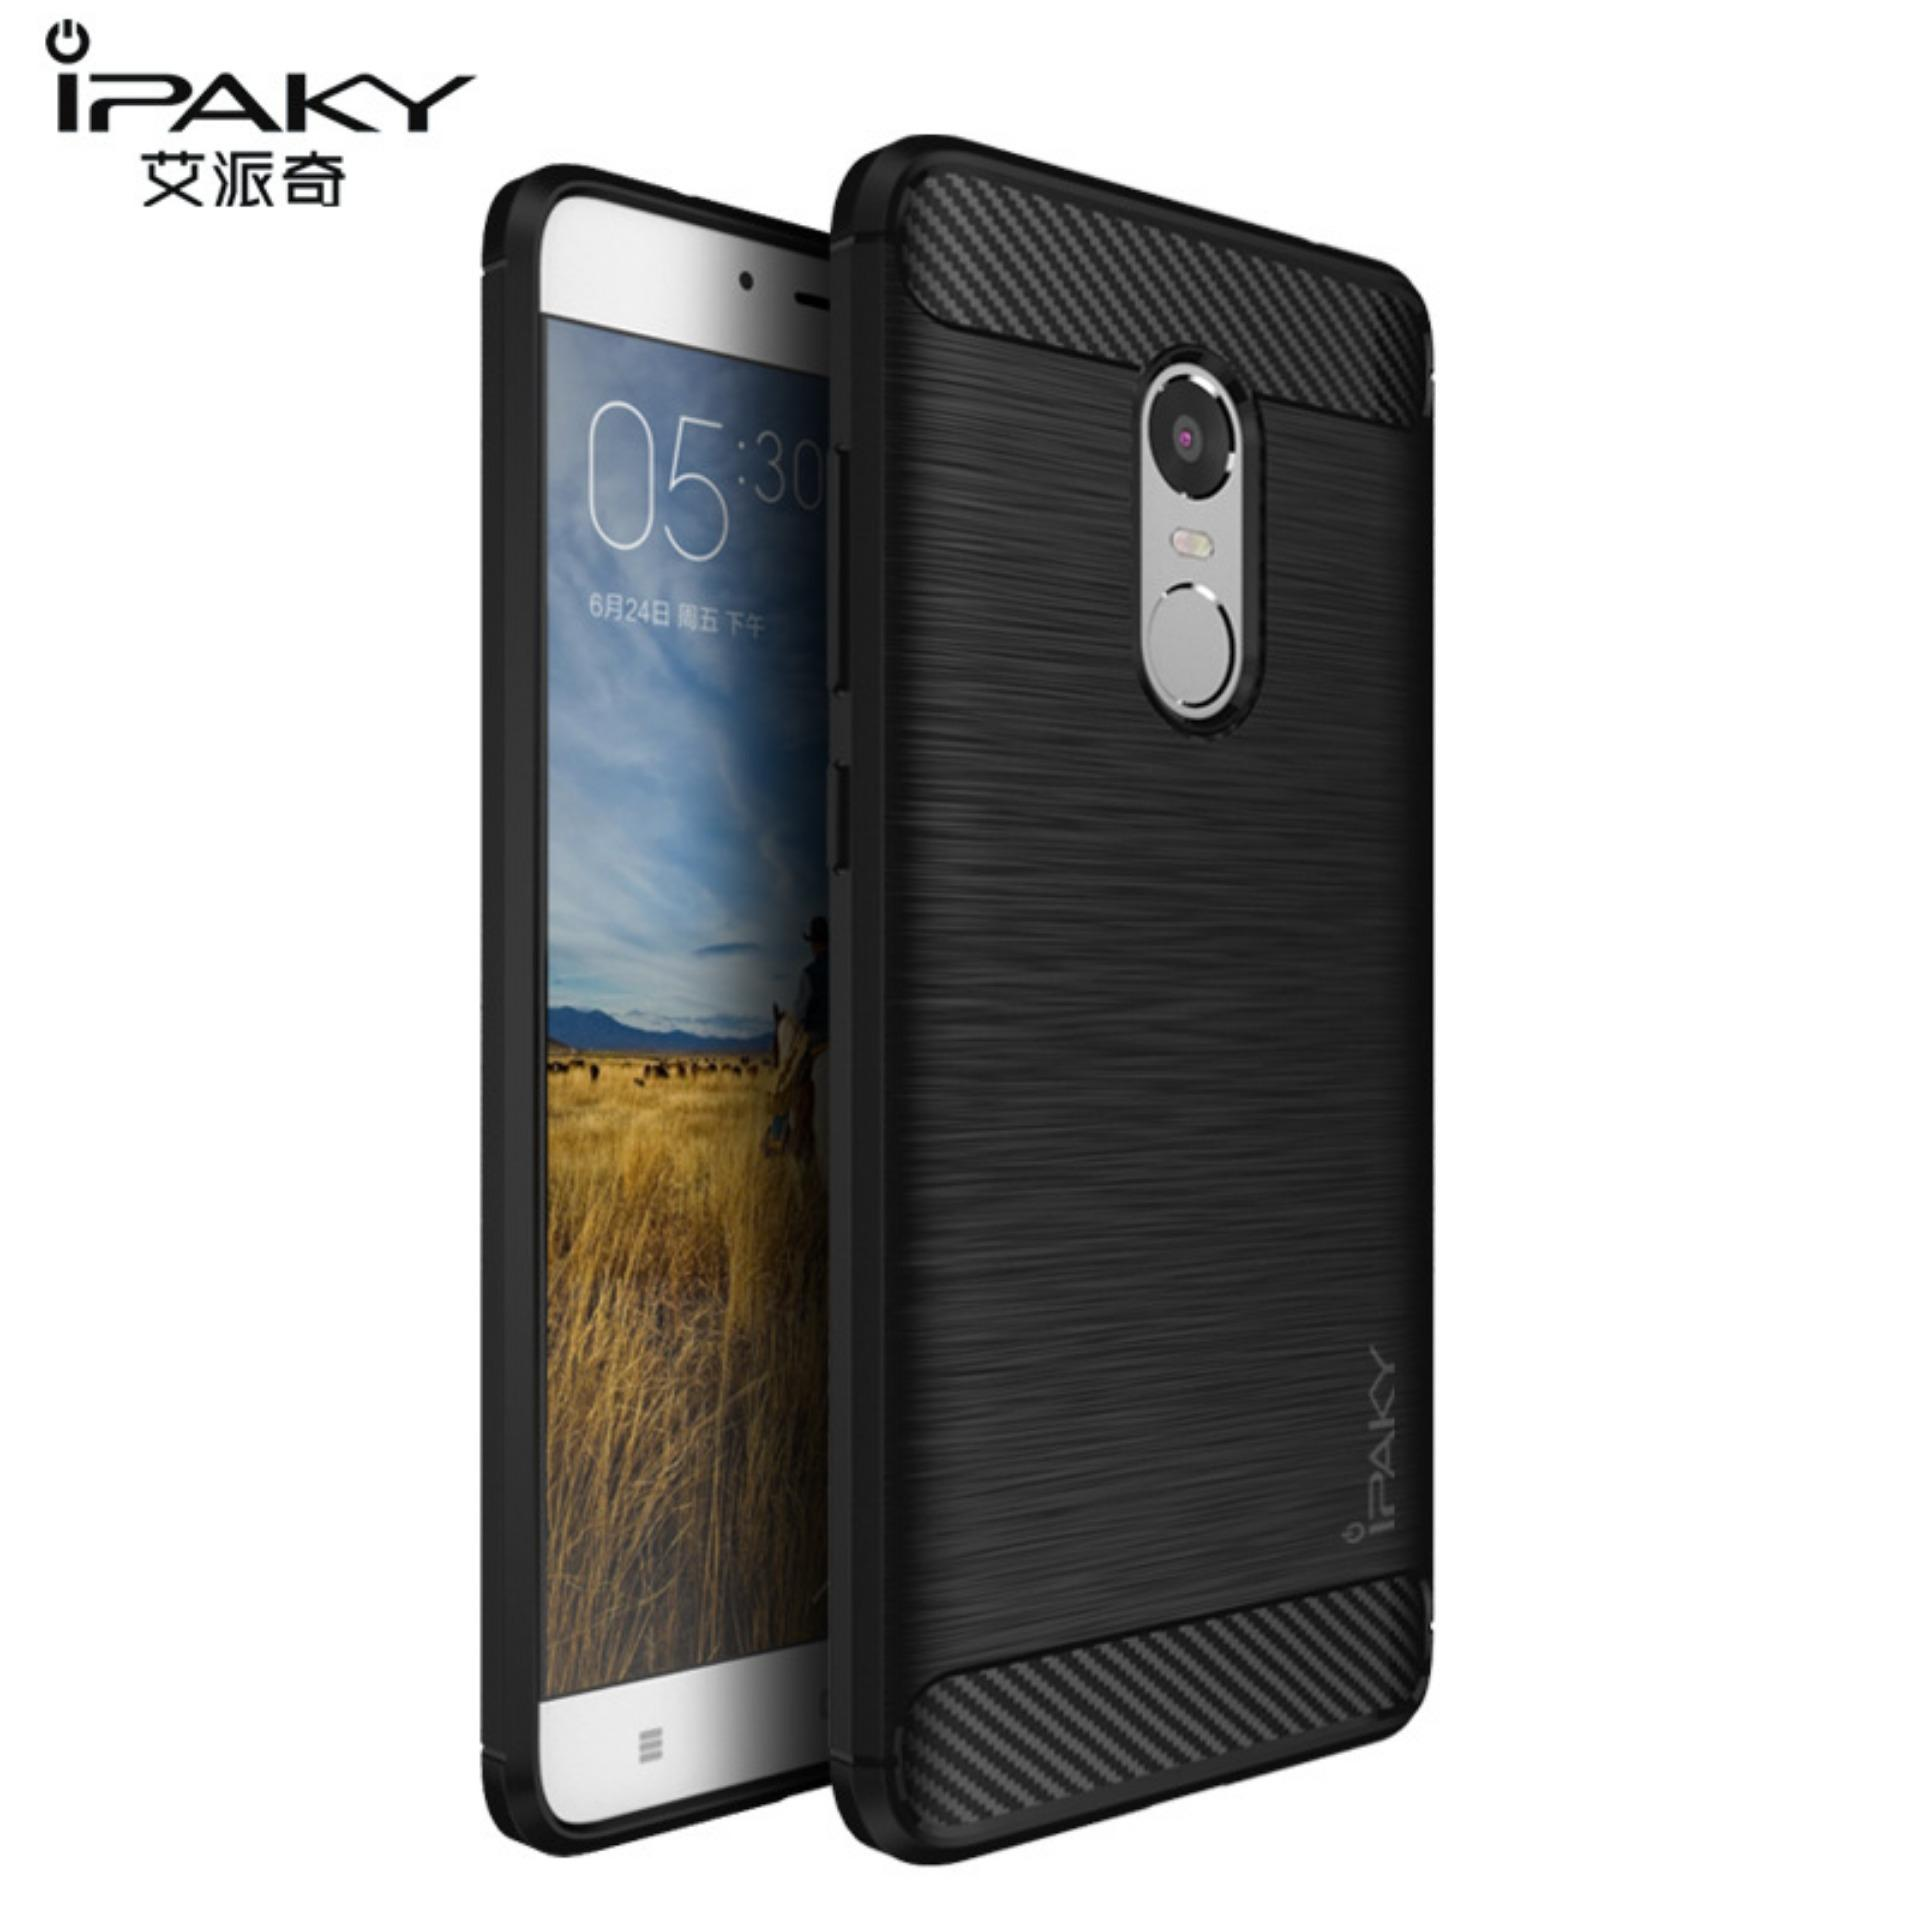 Original Lazada Case Ipaky Shockproof Carbon Hybrid For Xiaomi Redmi Note 4 / Note 4x -